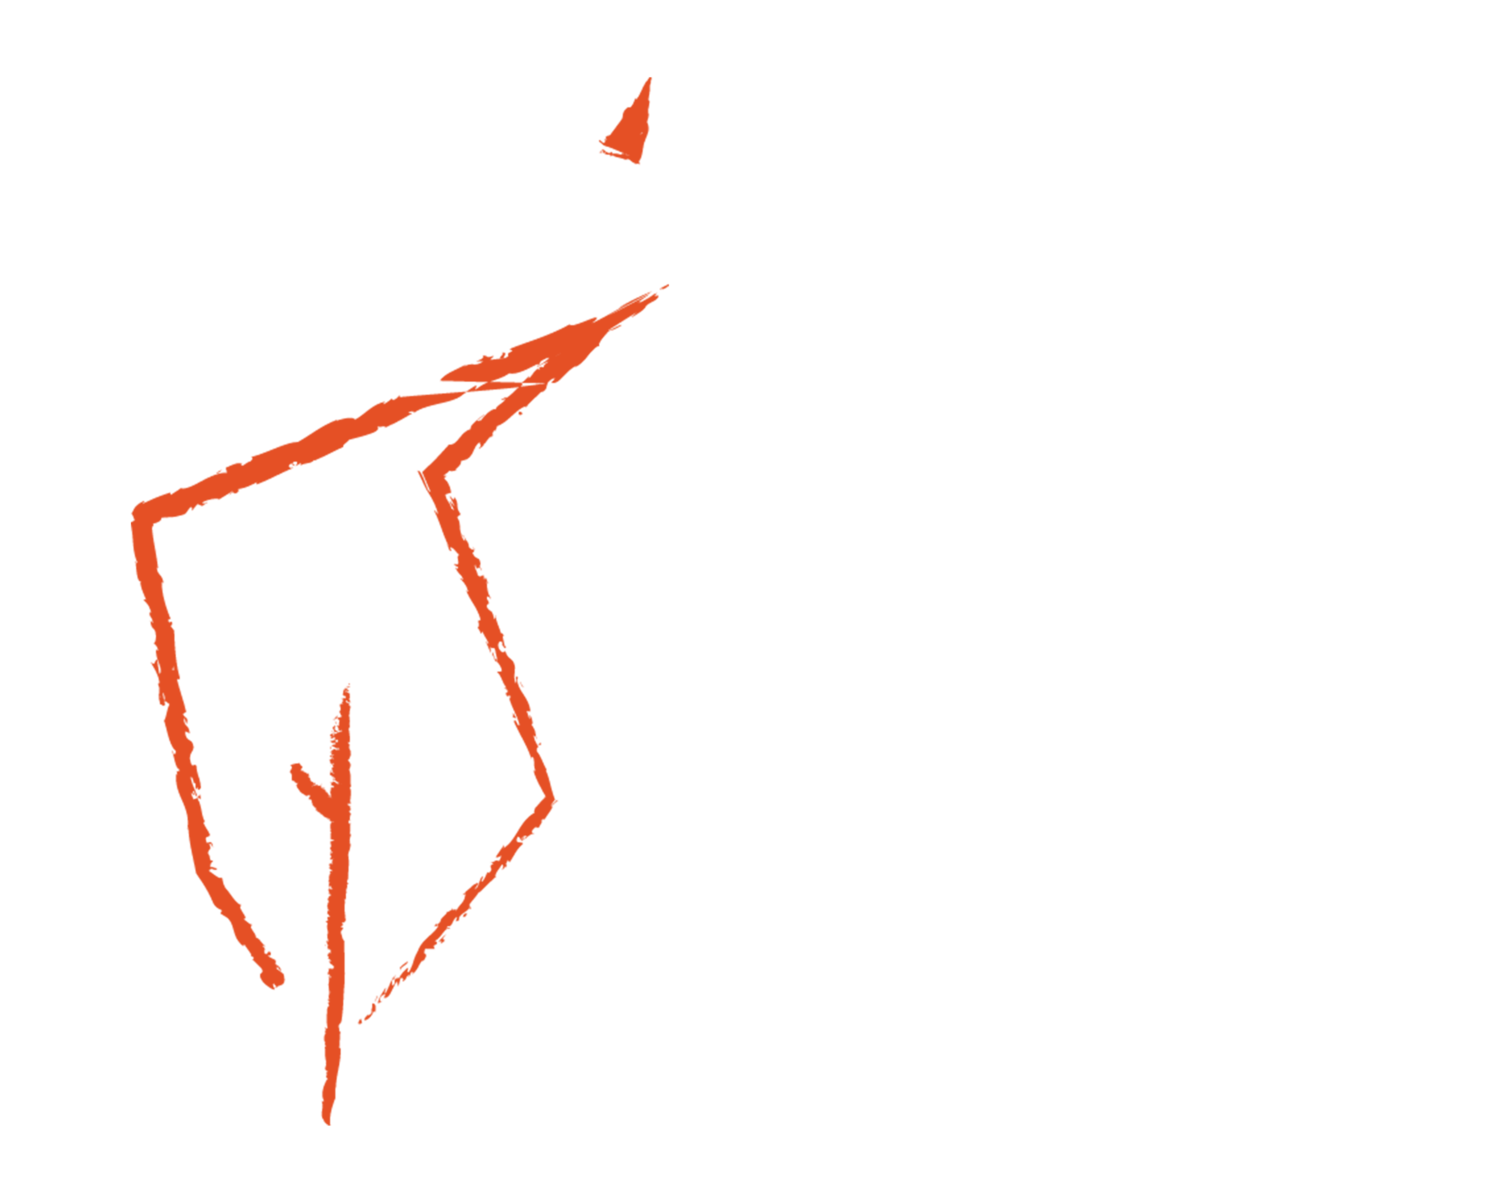 Burning Bush Films